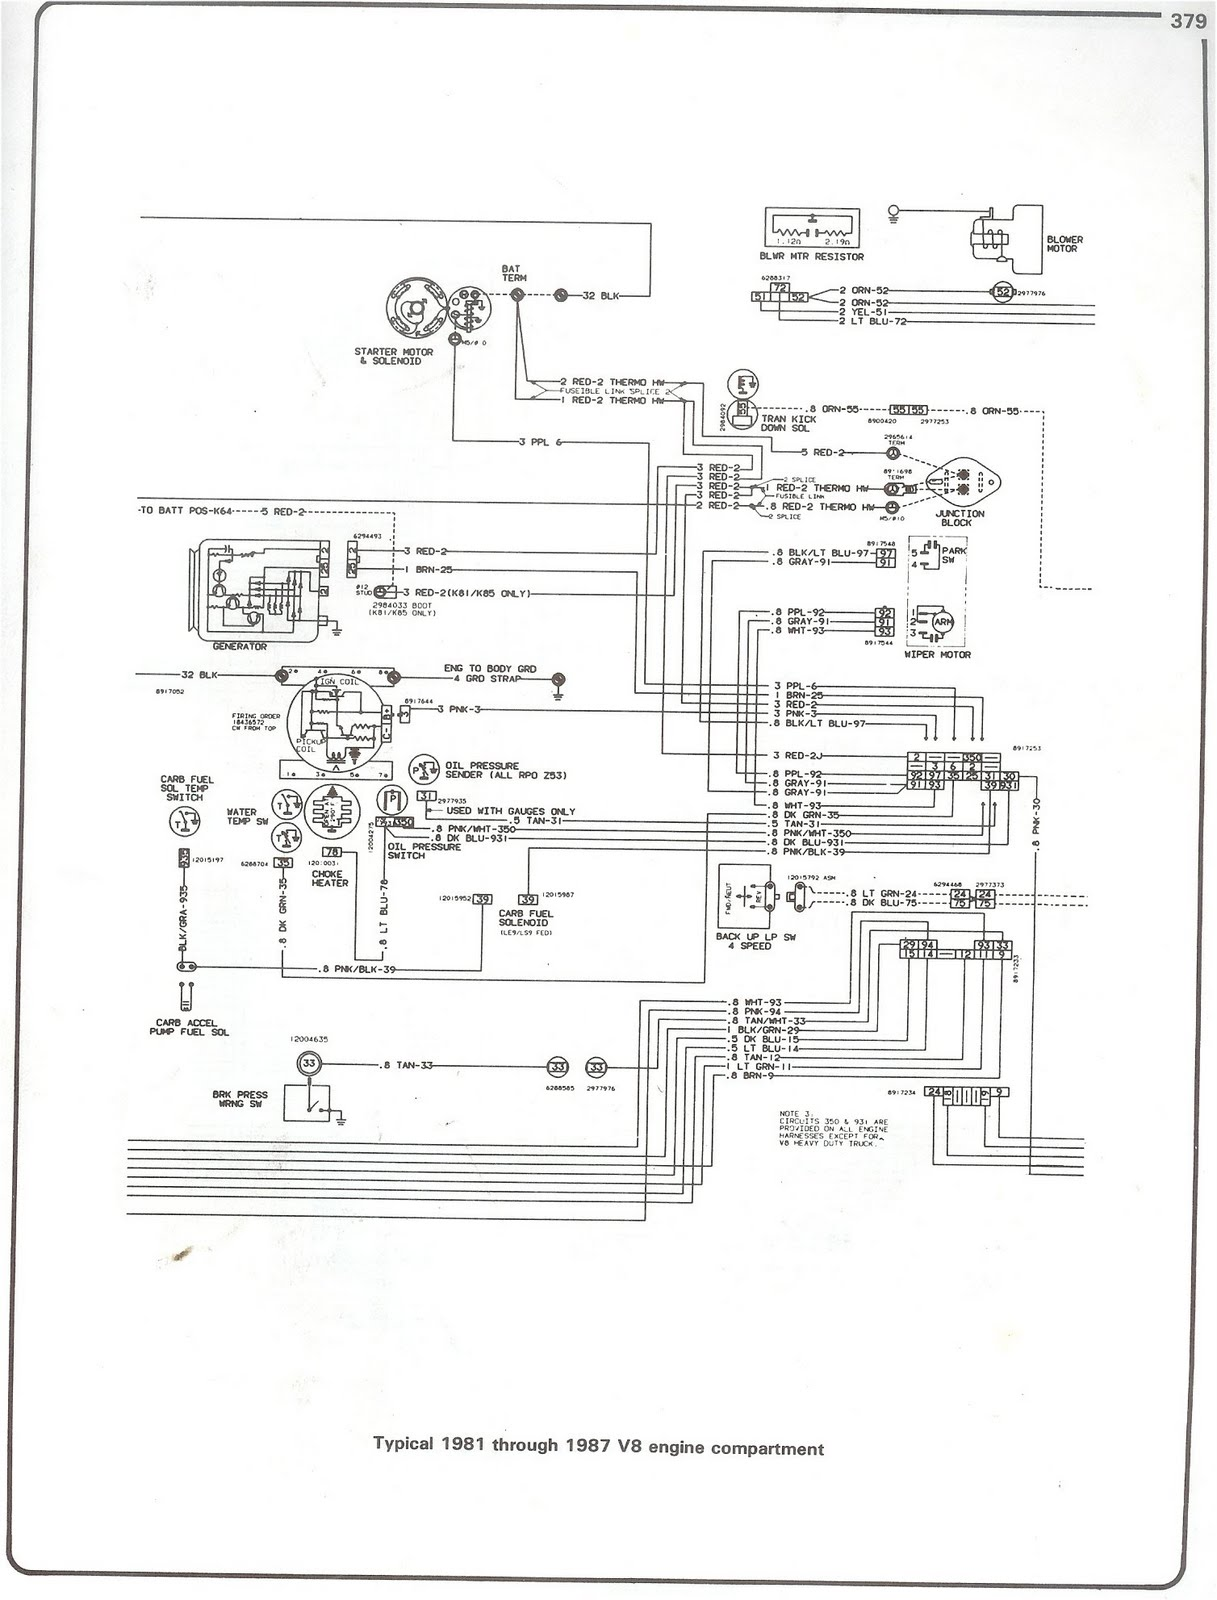 small resolution of 1981 toyota pickup tail light wiring diagram trusted wiring diagram 1979 toyota pickup wiring diagram 1991